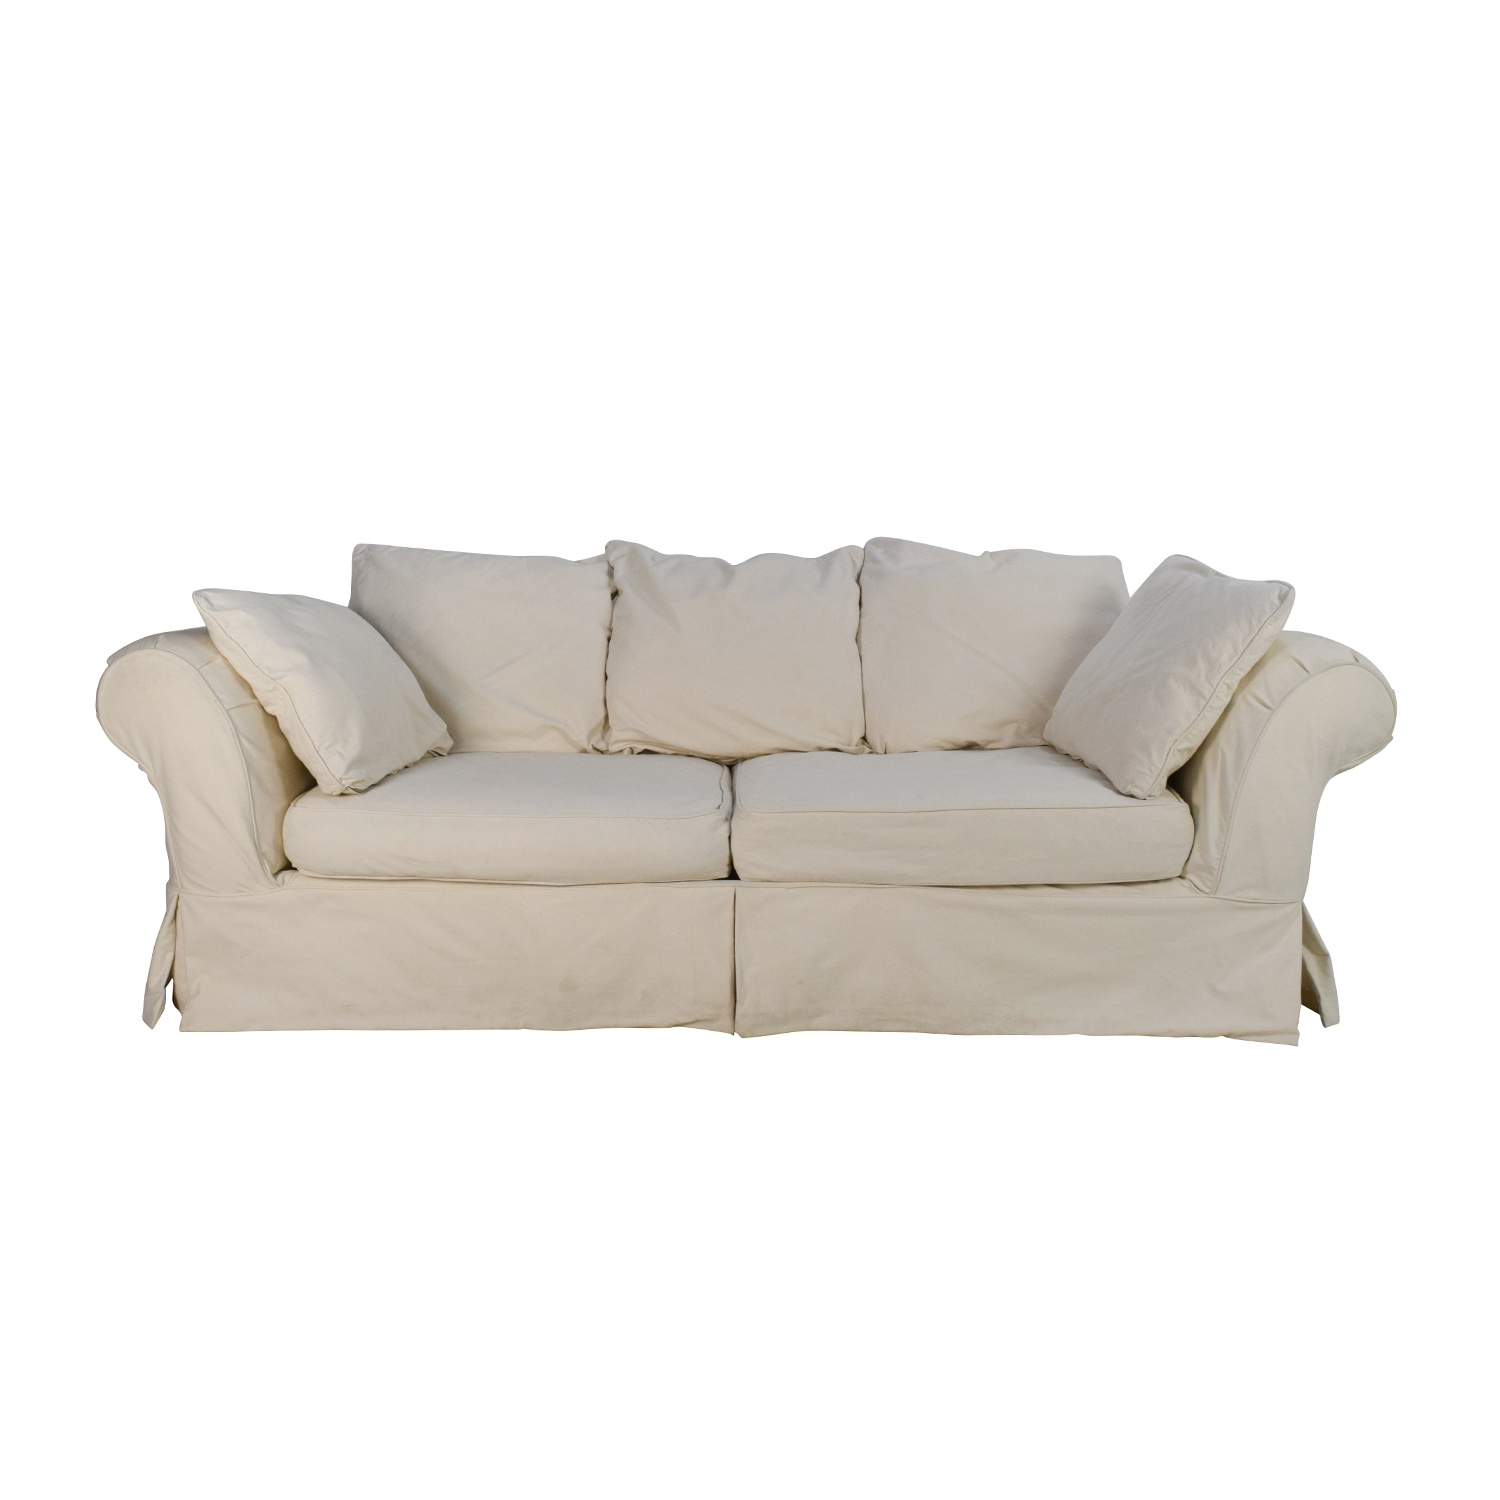 89% Off - Jennifer Convertibles Jennifer Convertibles Linda regarding Jennifer Convertibles Sectional Sofas